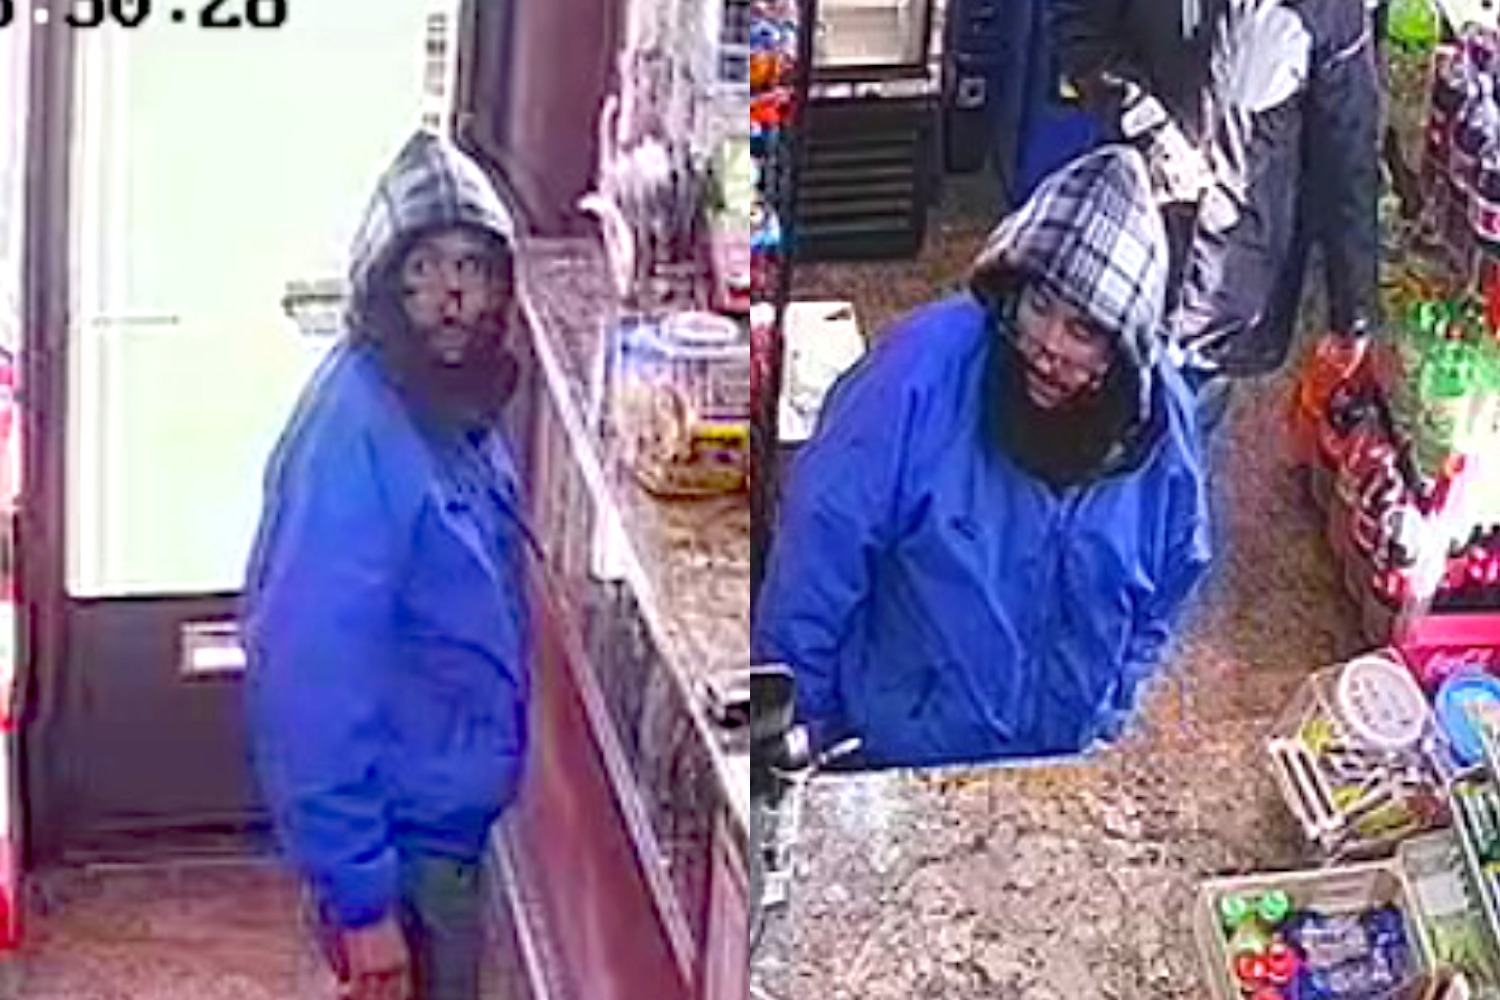 Police are tying to determine the identity of this man, found unconscious Dec. 10, 2019, in a Rogers Park yard.